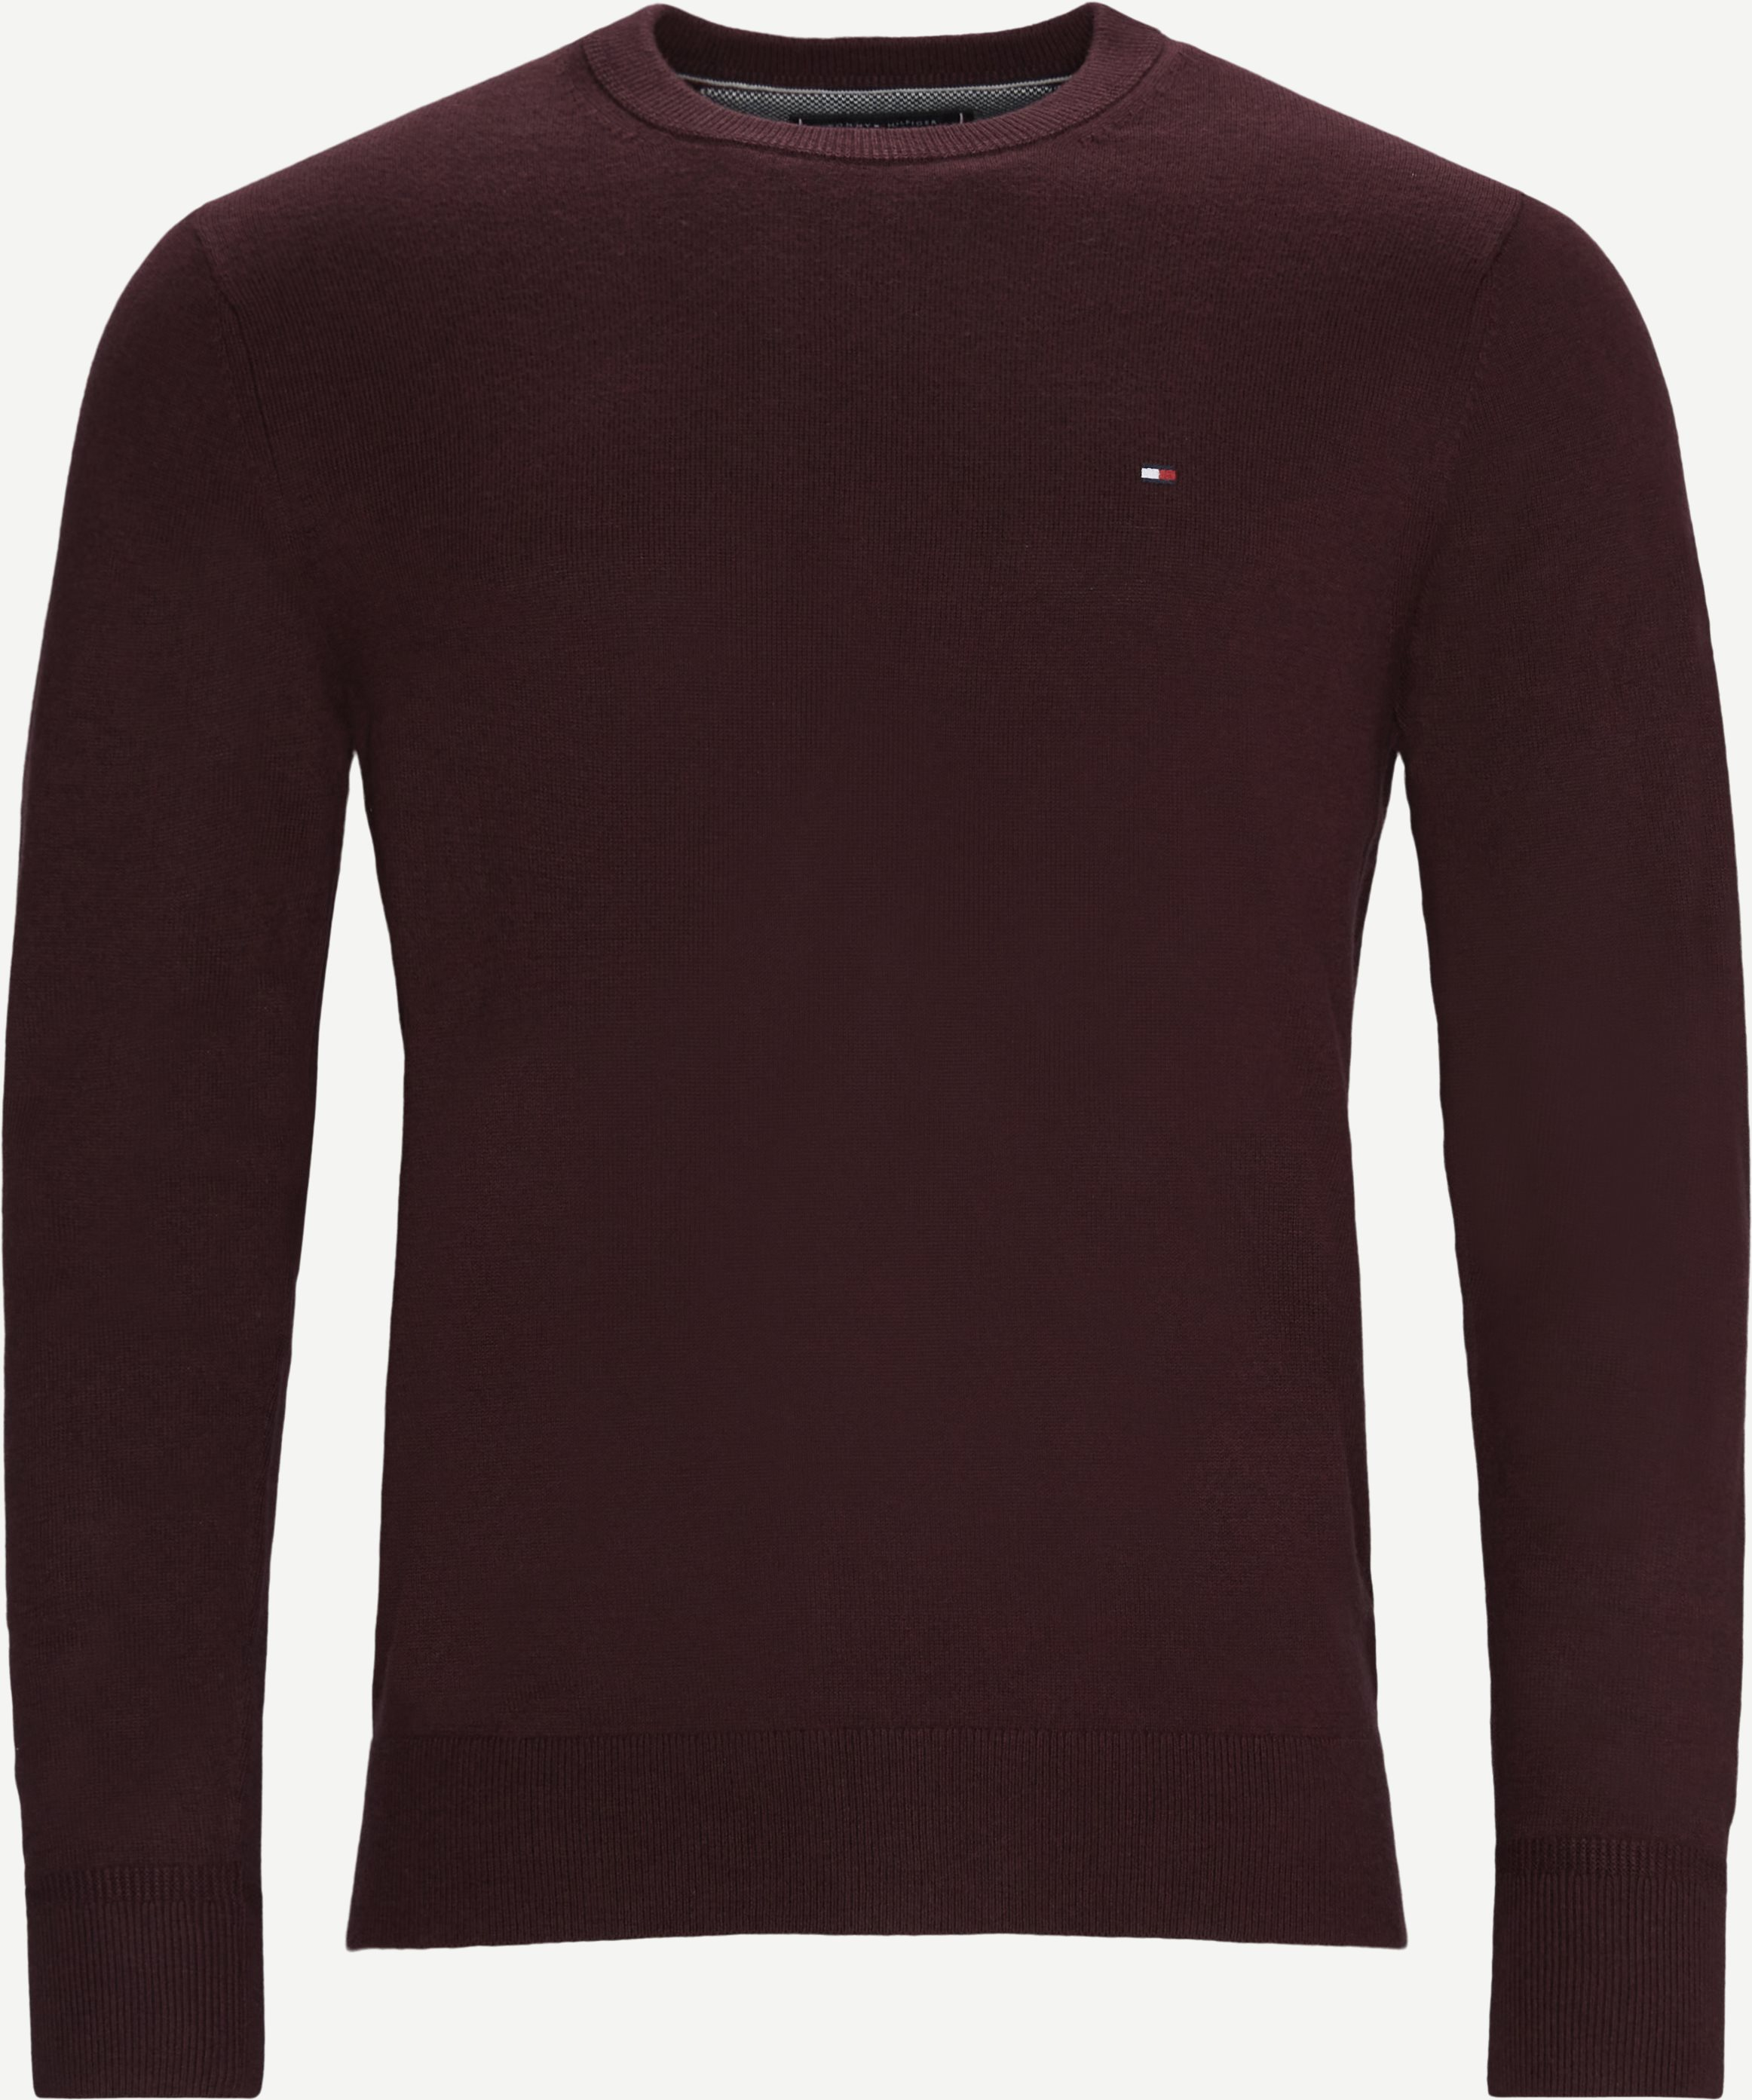 Knitwear - Regular - Bordeaux